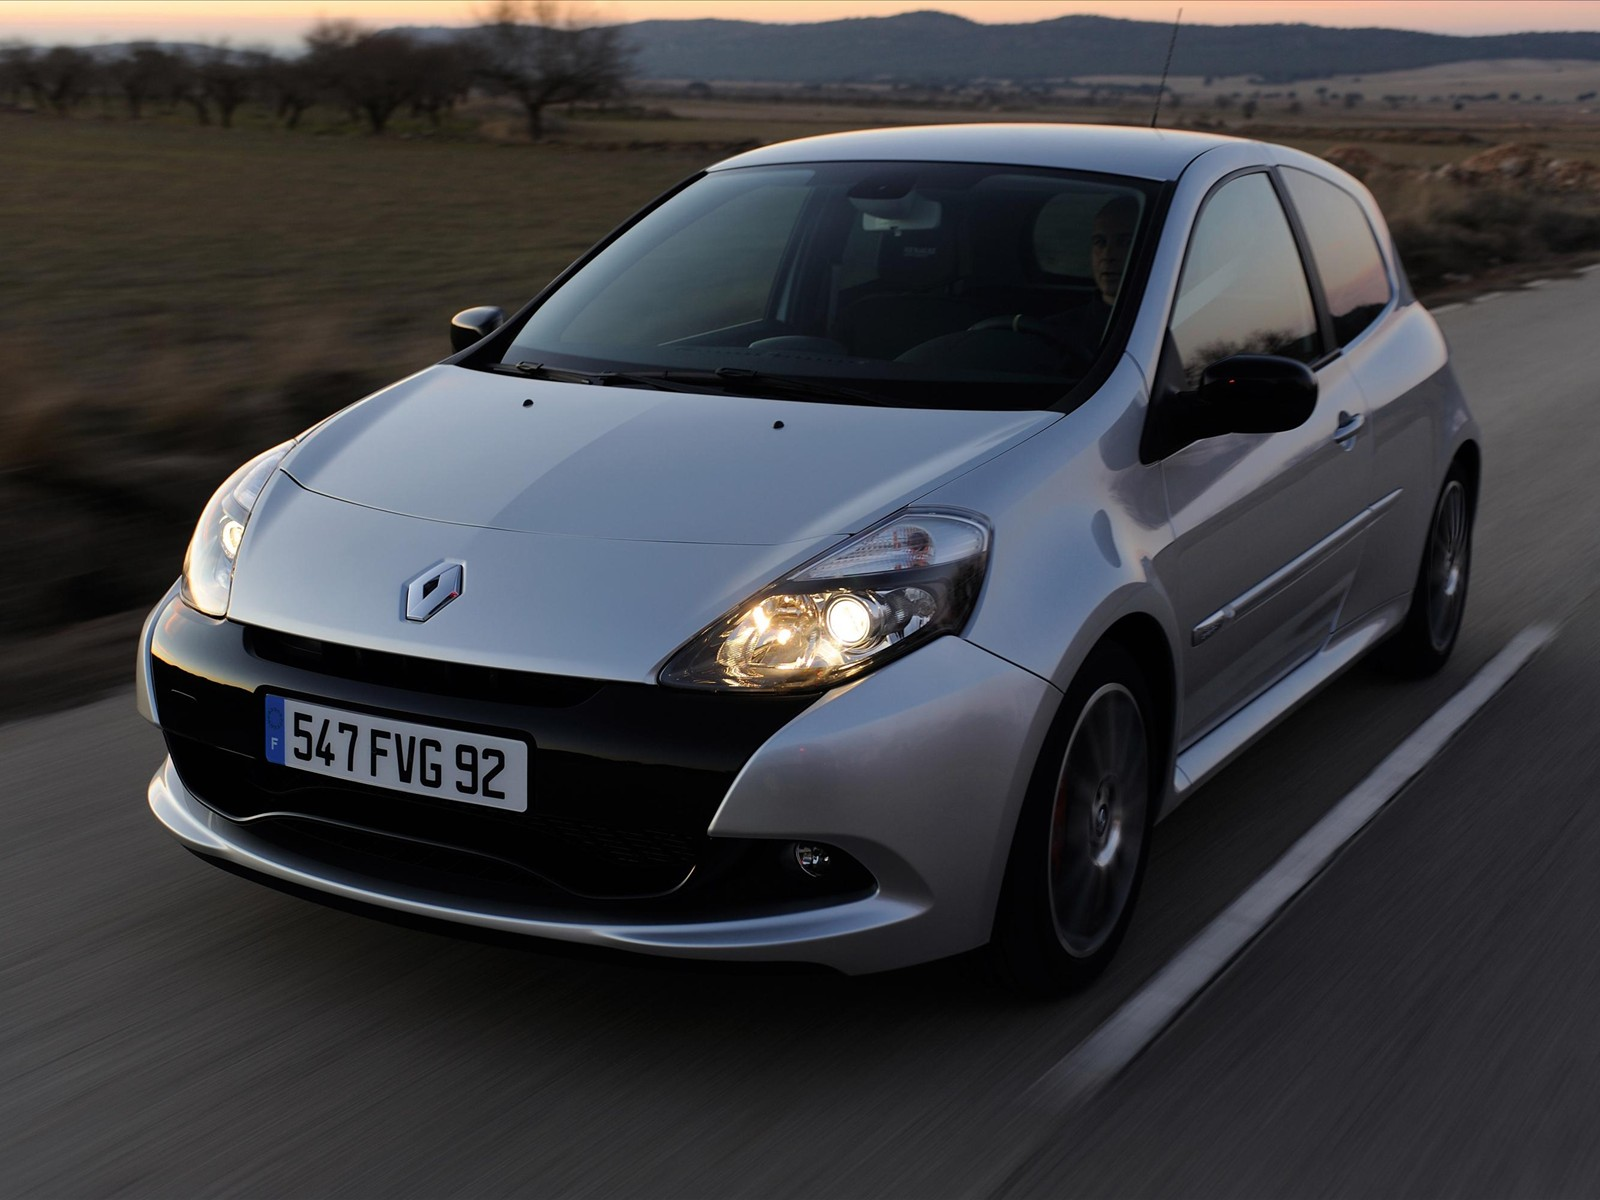 Black Home Wallpaper Car Pictures Renault Clio Sport 2010